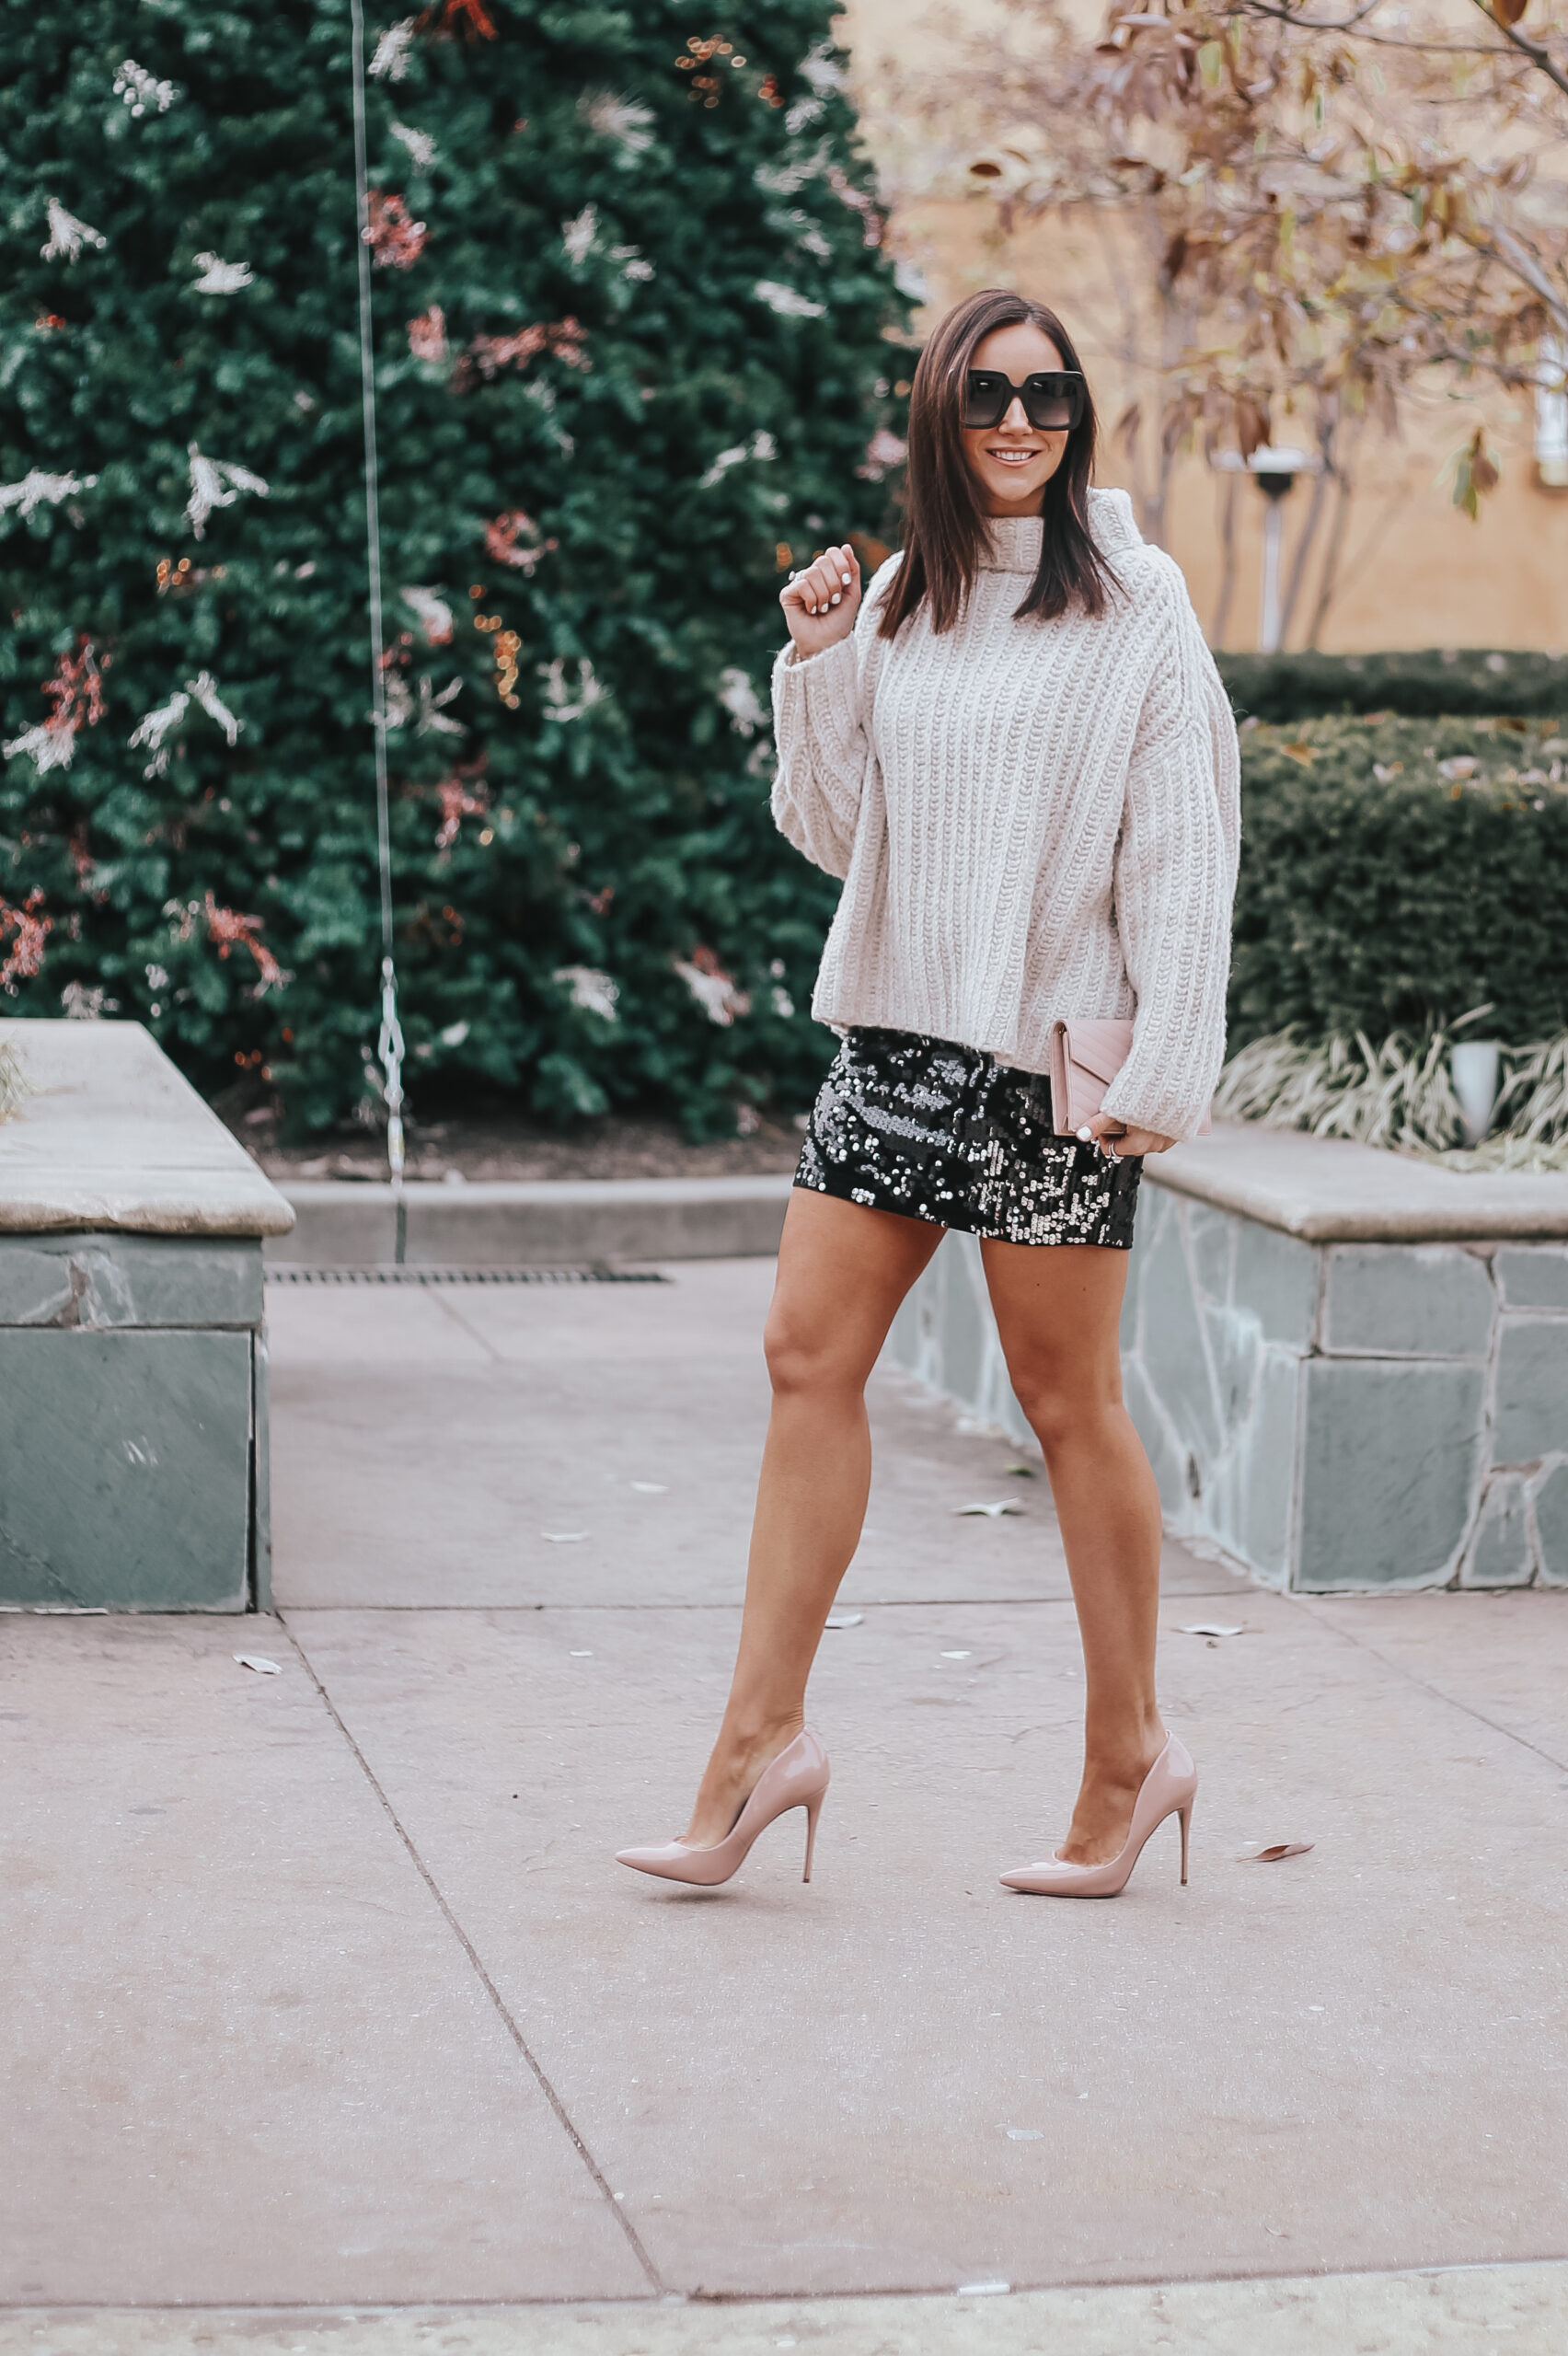 mini sequin skirt, new year's eve outfit ideas, cozy sweater with mini skirt, nude pumps